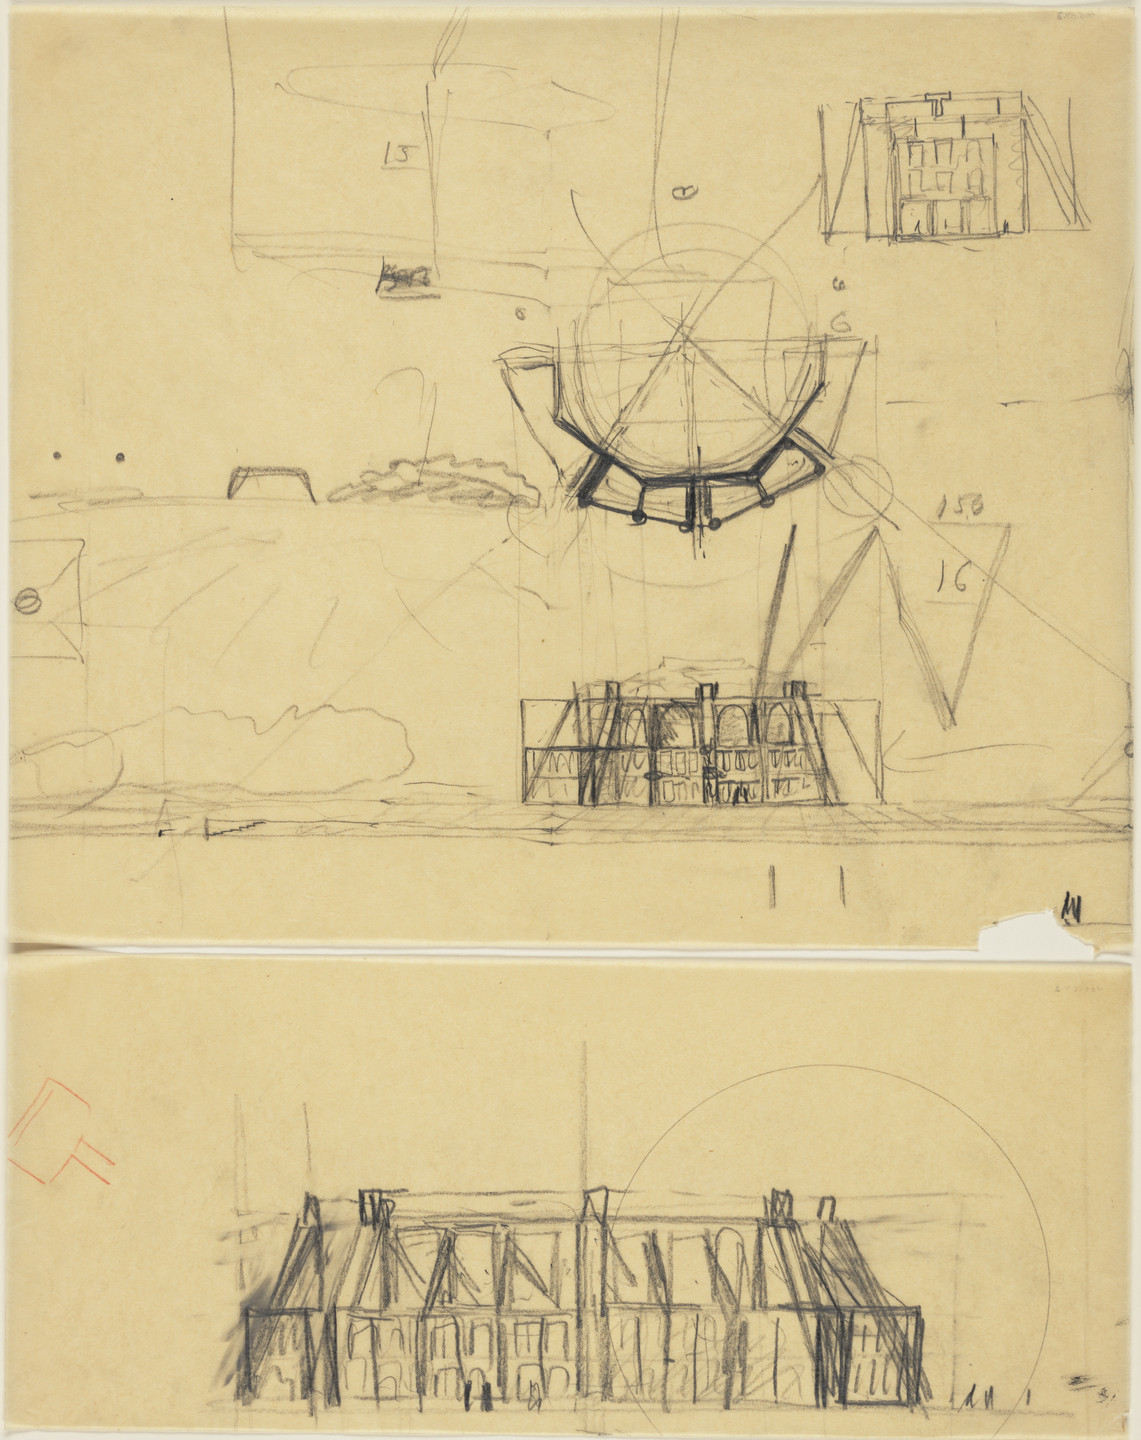 Louis I. Kahn. First Unitarian Church and School, Rochester, New York, Plan, elevation, and perspective sketches. 1959